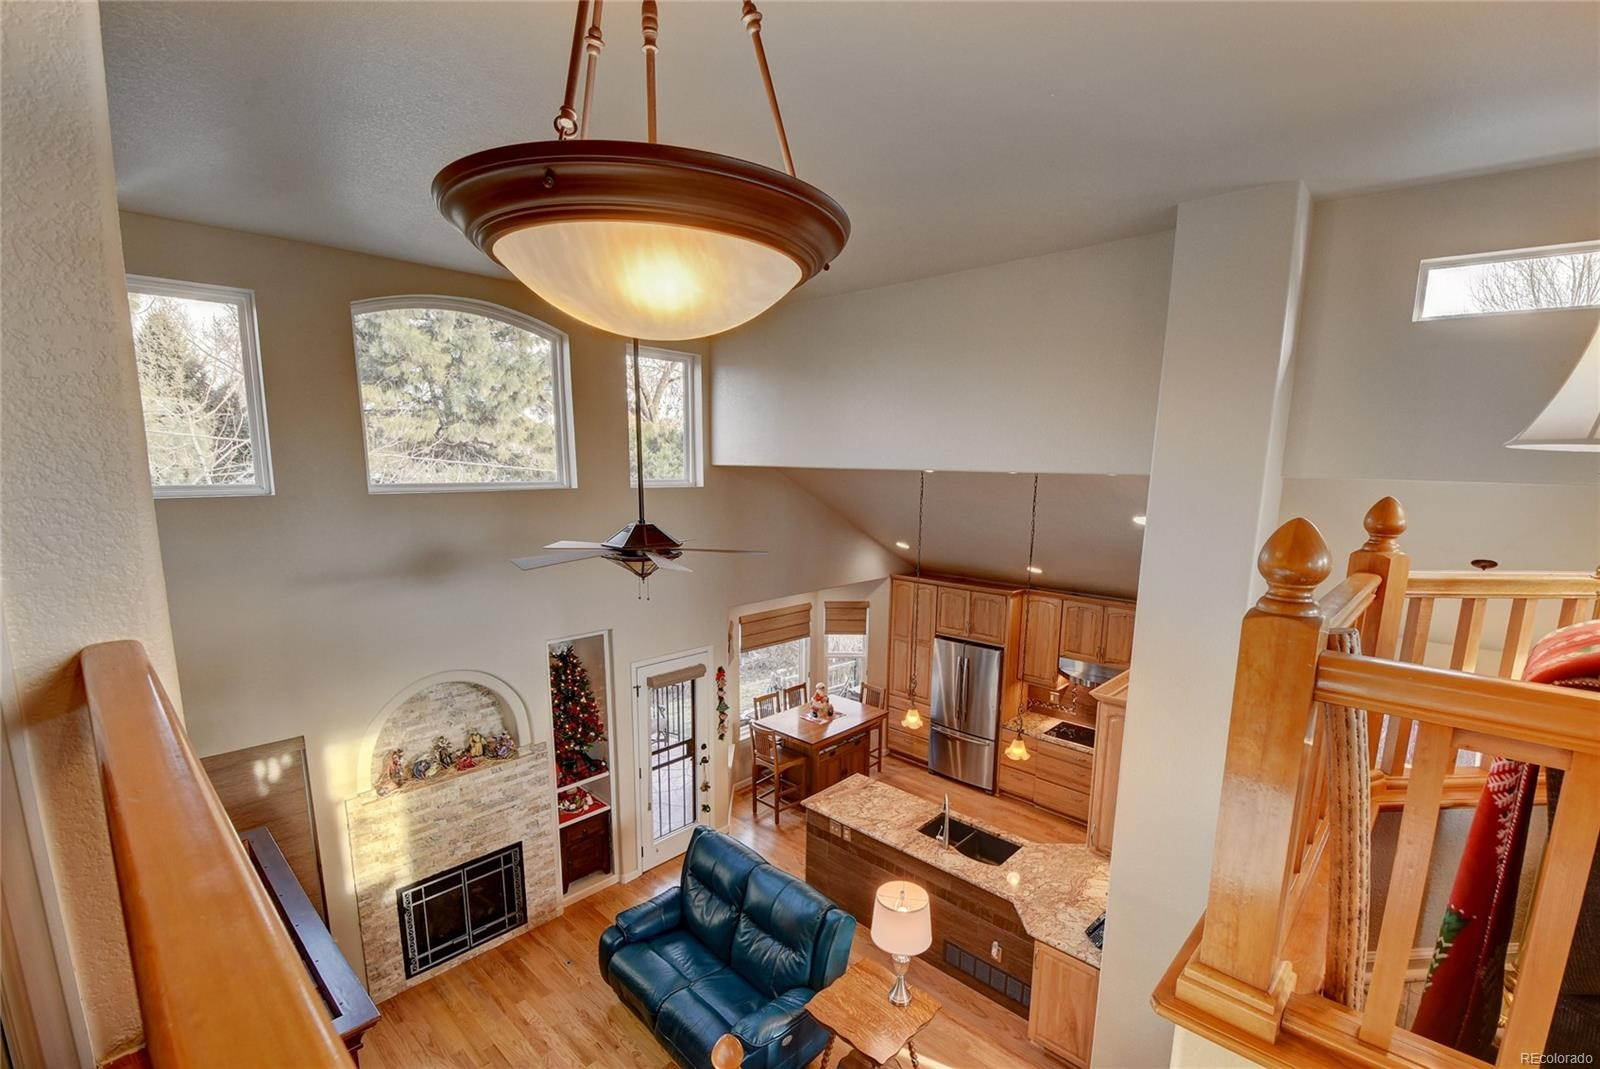 MLS# 9913436 - 24 - 5726 W 81st Place, Arvada, CO 80003